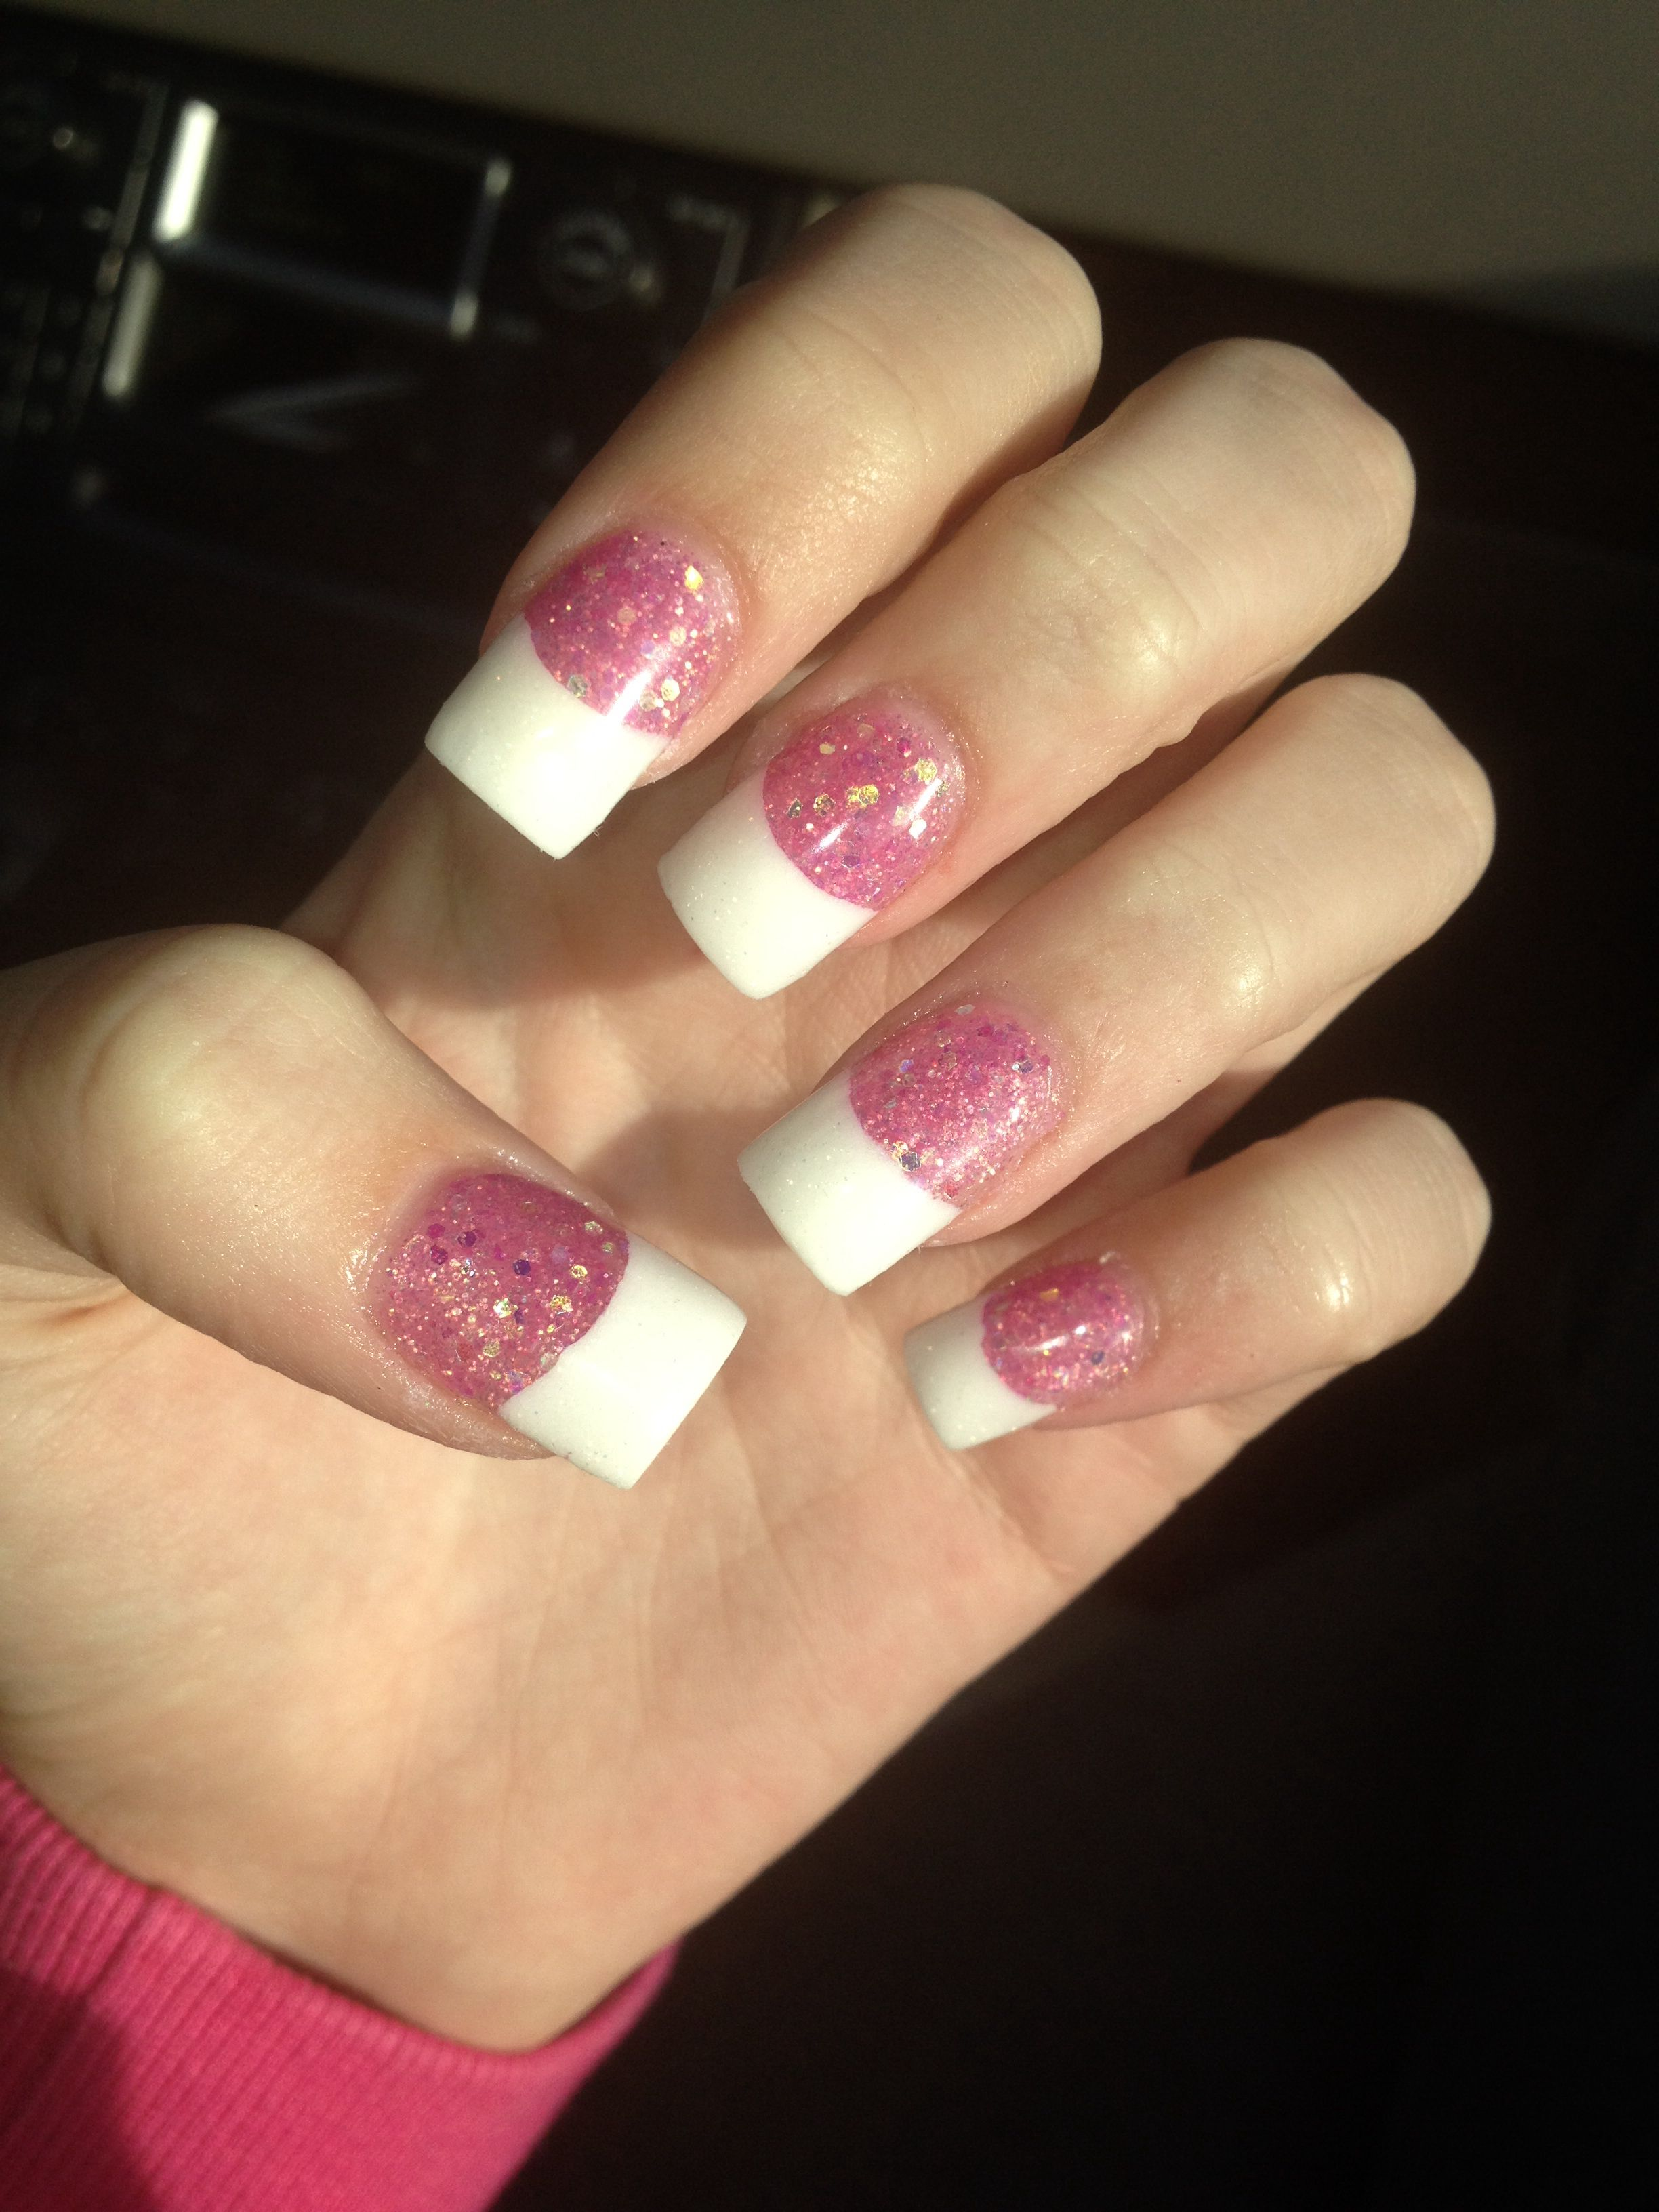 Acrylic nails, Glitter, Pink, French tip | MY NAILS | Pinterest ...